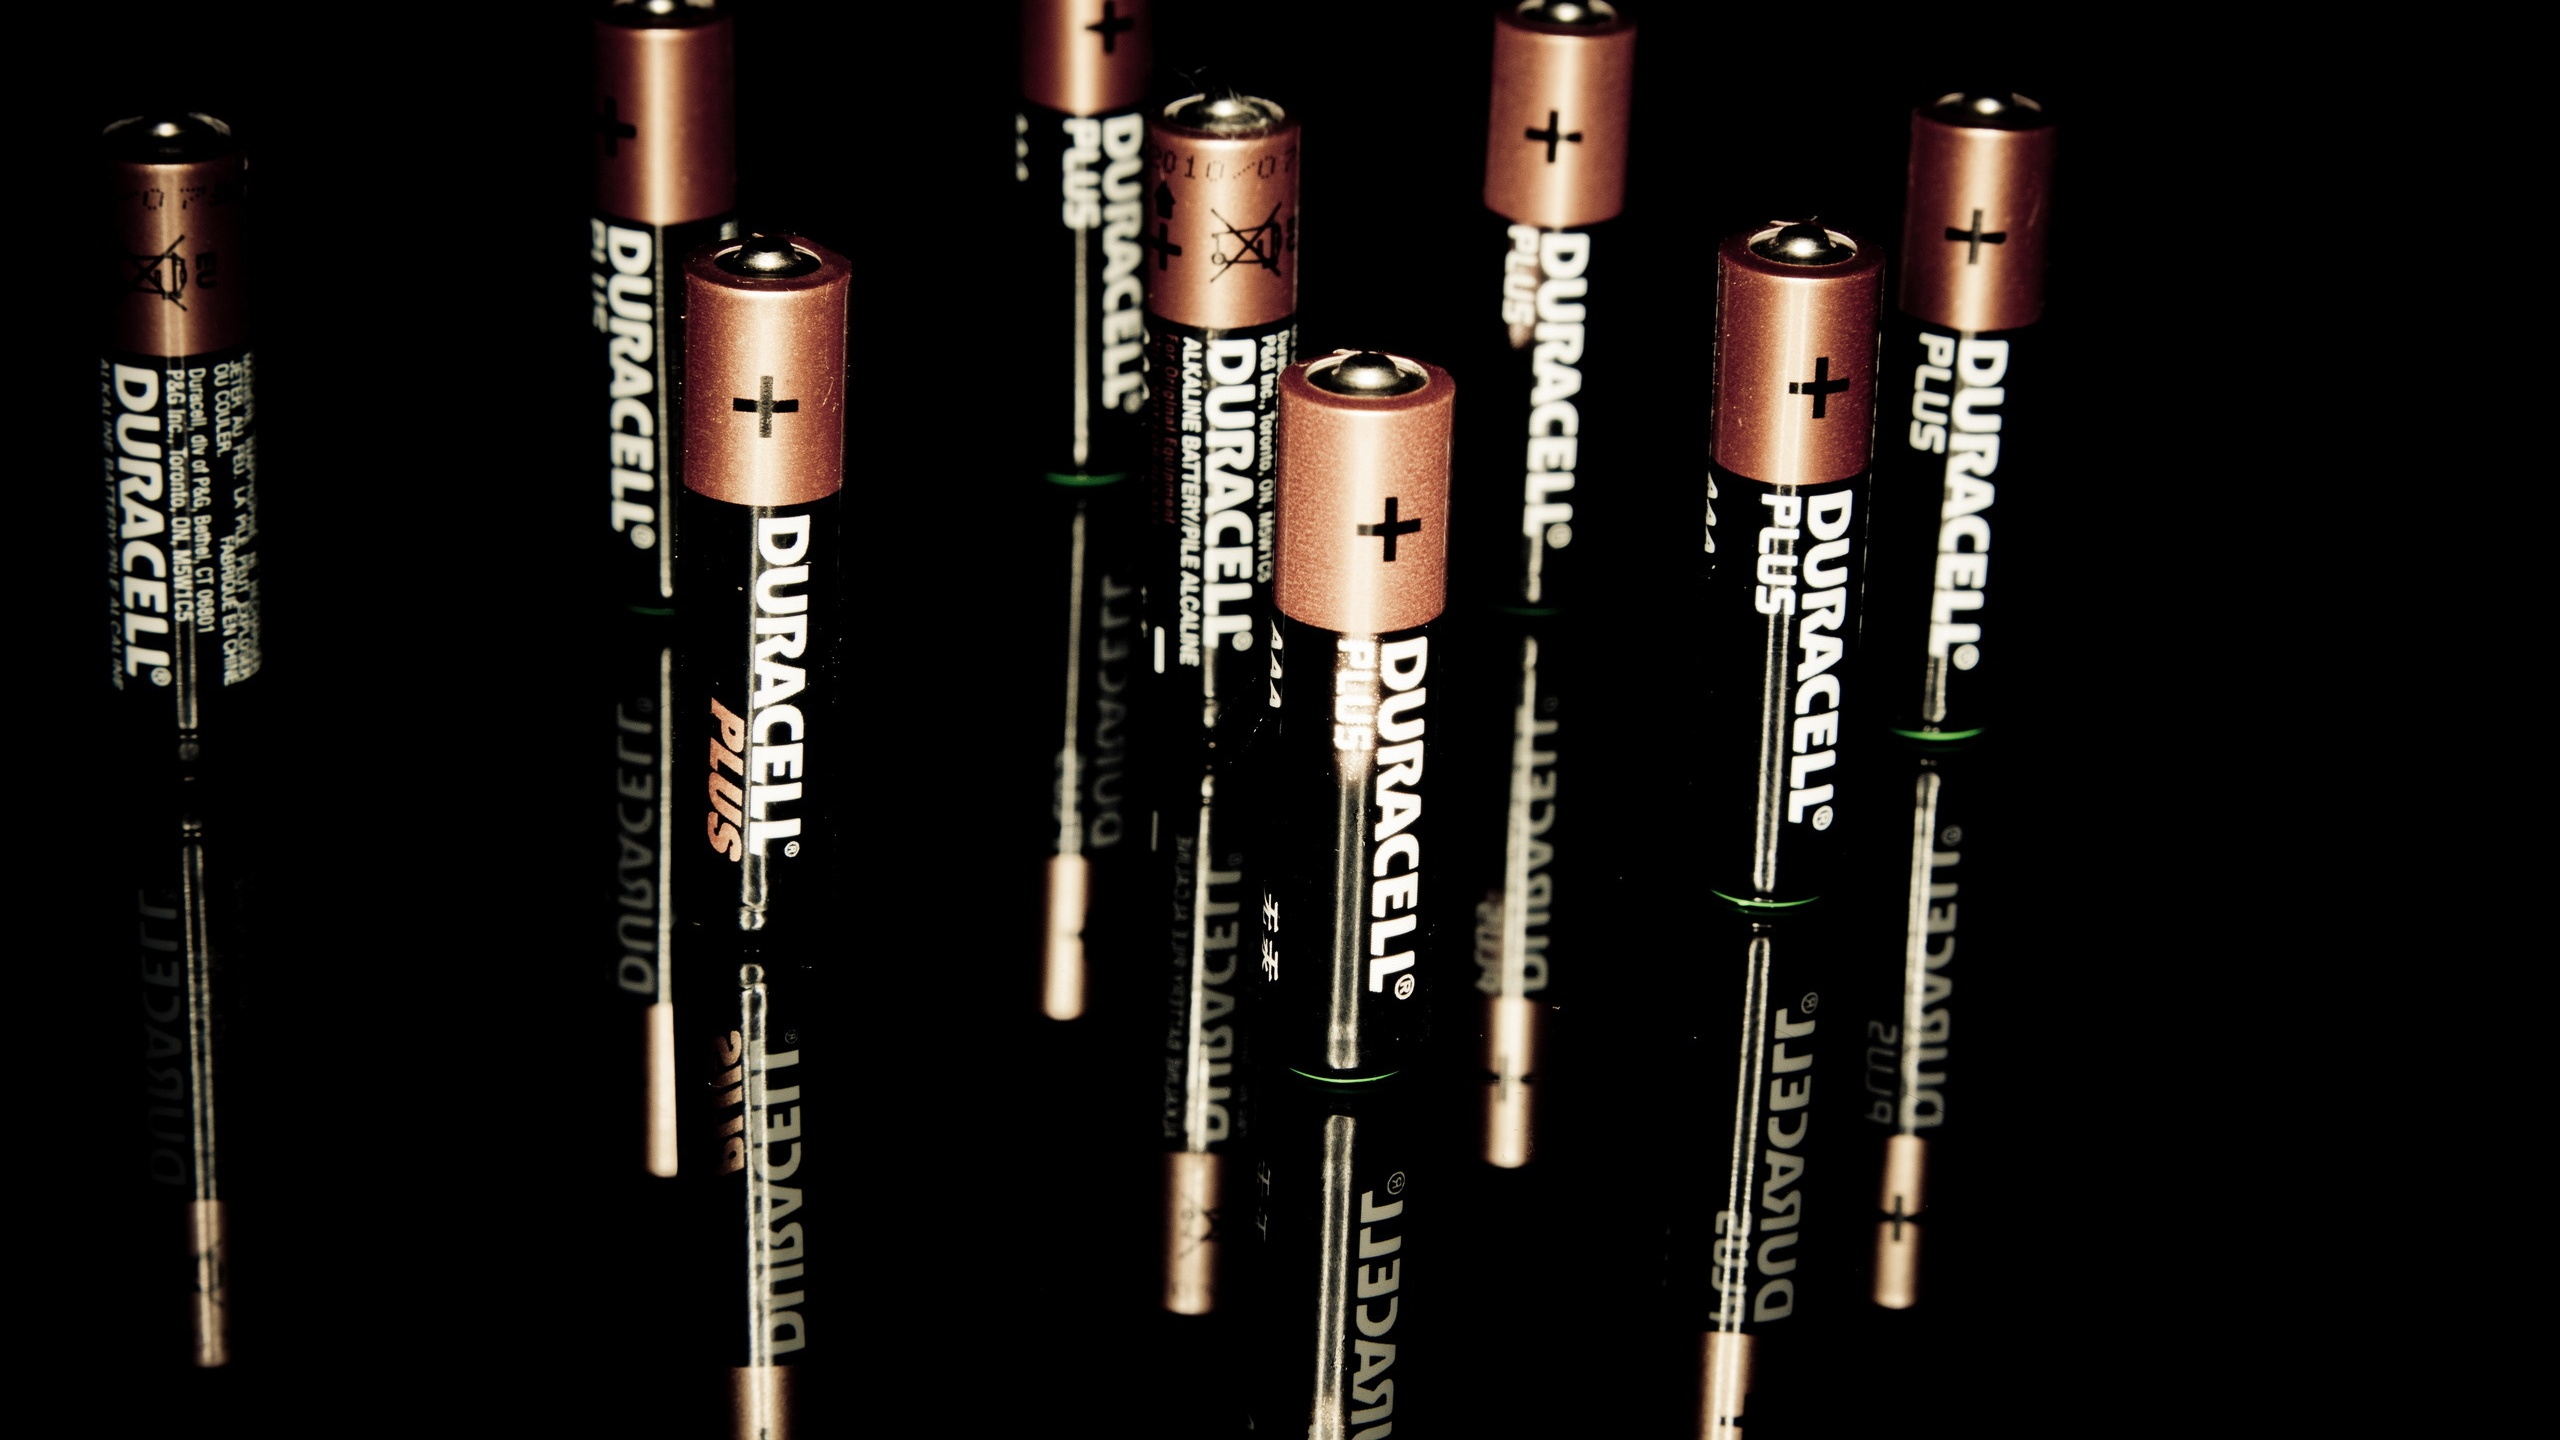 Wallpaper Duracell battery 2560x1600 HD Picture Image 2560x1440